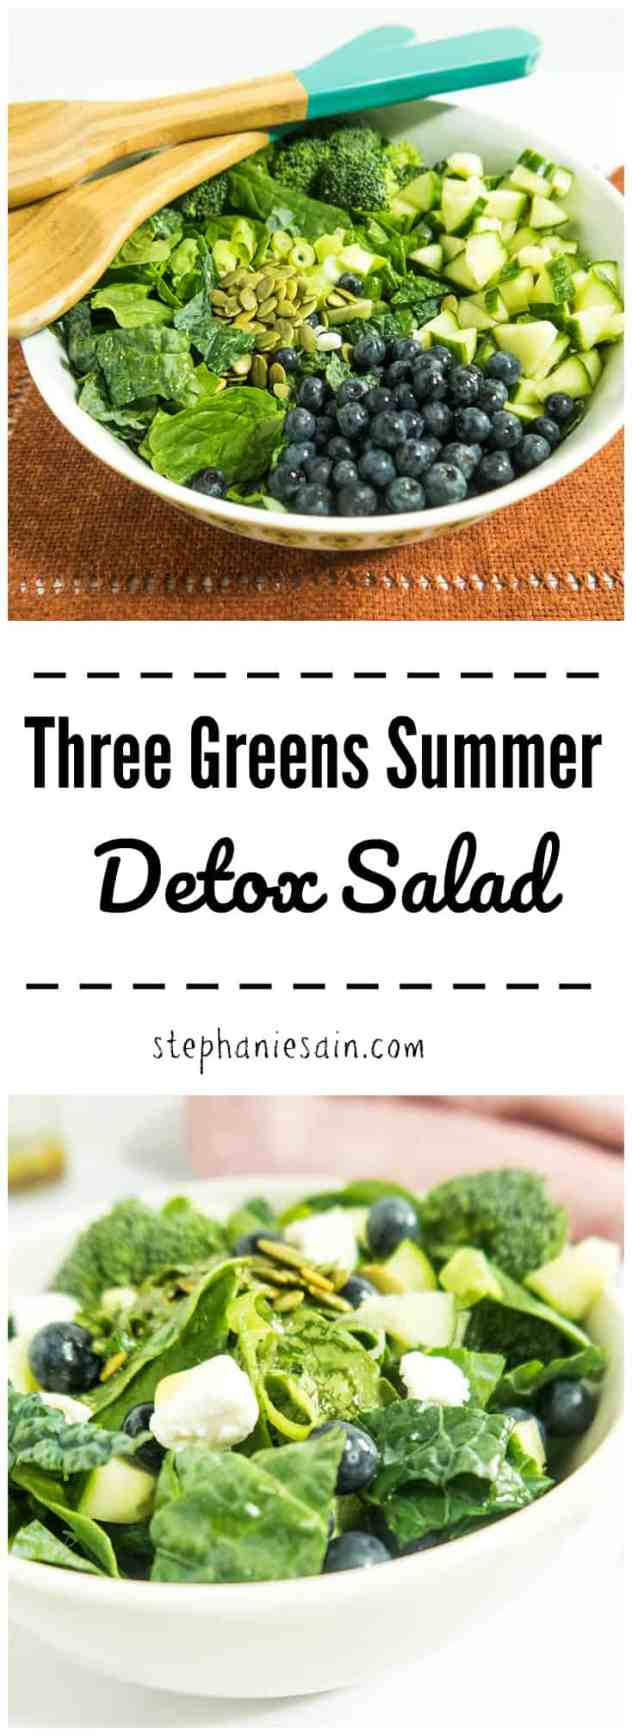 Three Greens Summer Detox Salad is loaded with lots of tasty, healthy nutrients. The perfect easy summer meal requiring little prep and no stove required. Also great for gatherings. Gluten Free & Vegan option.